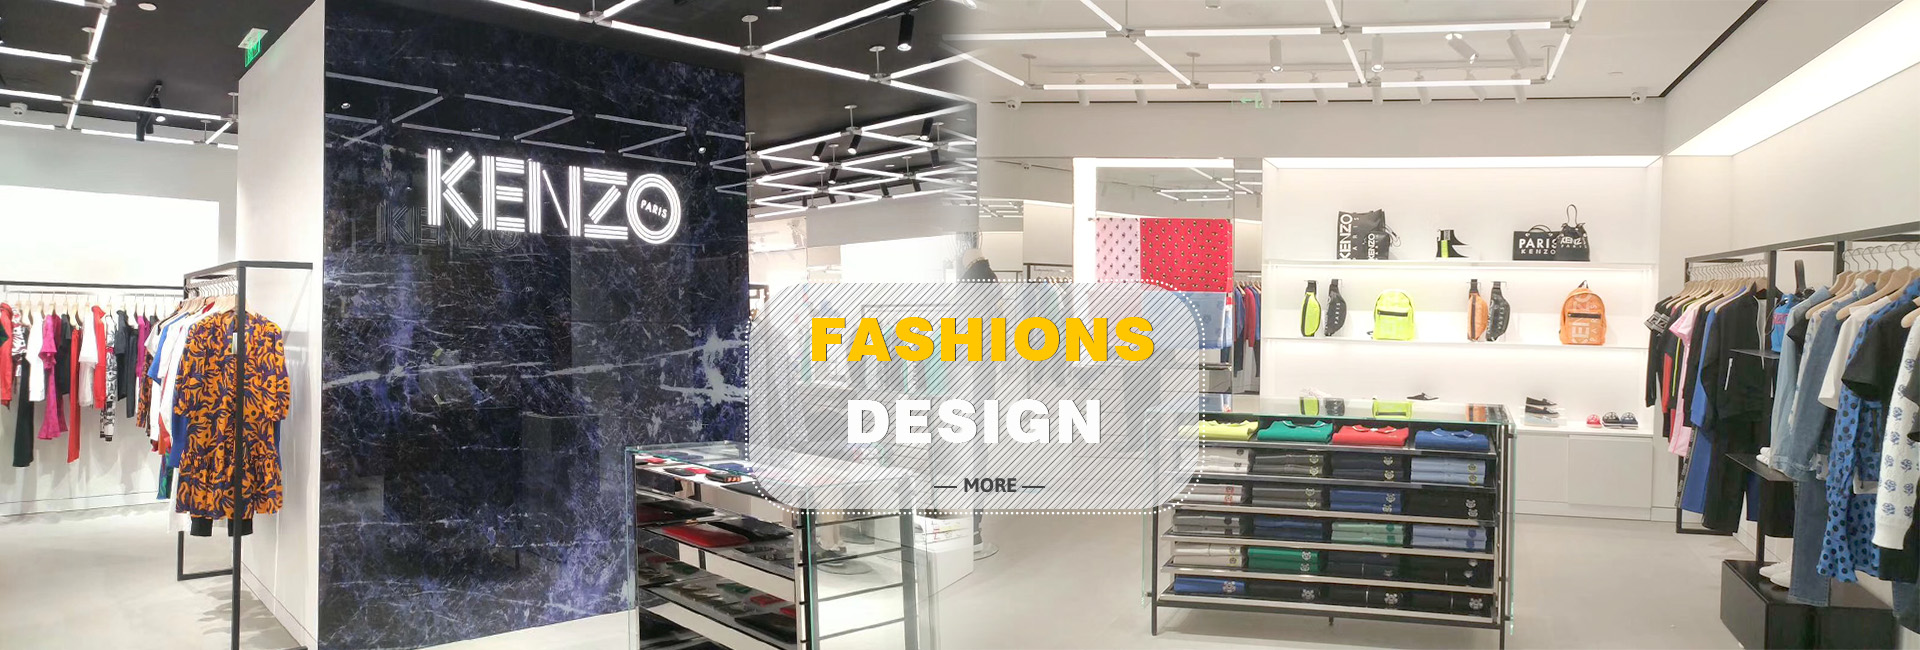 Weilin for Kenzo fixtures fitout